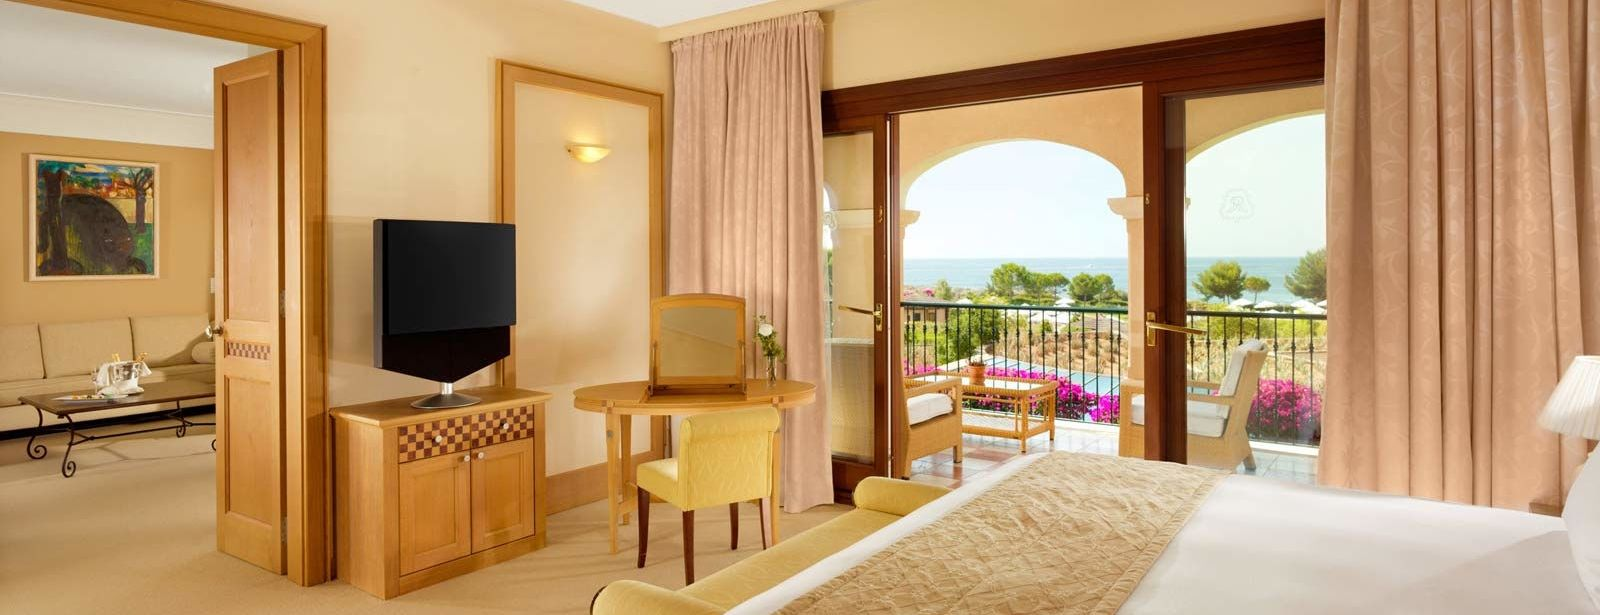 Ocean Two Suite |The St. Regis Mardavall Mallorca Resor